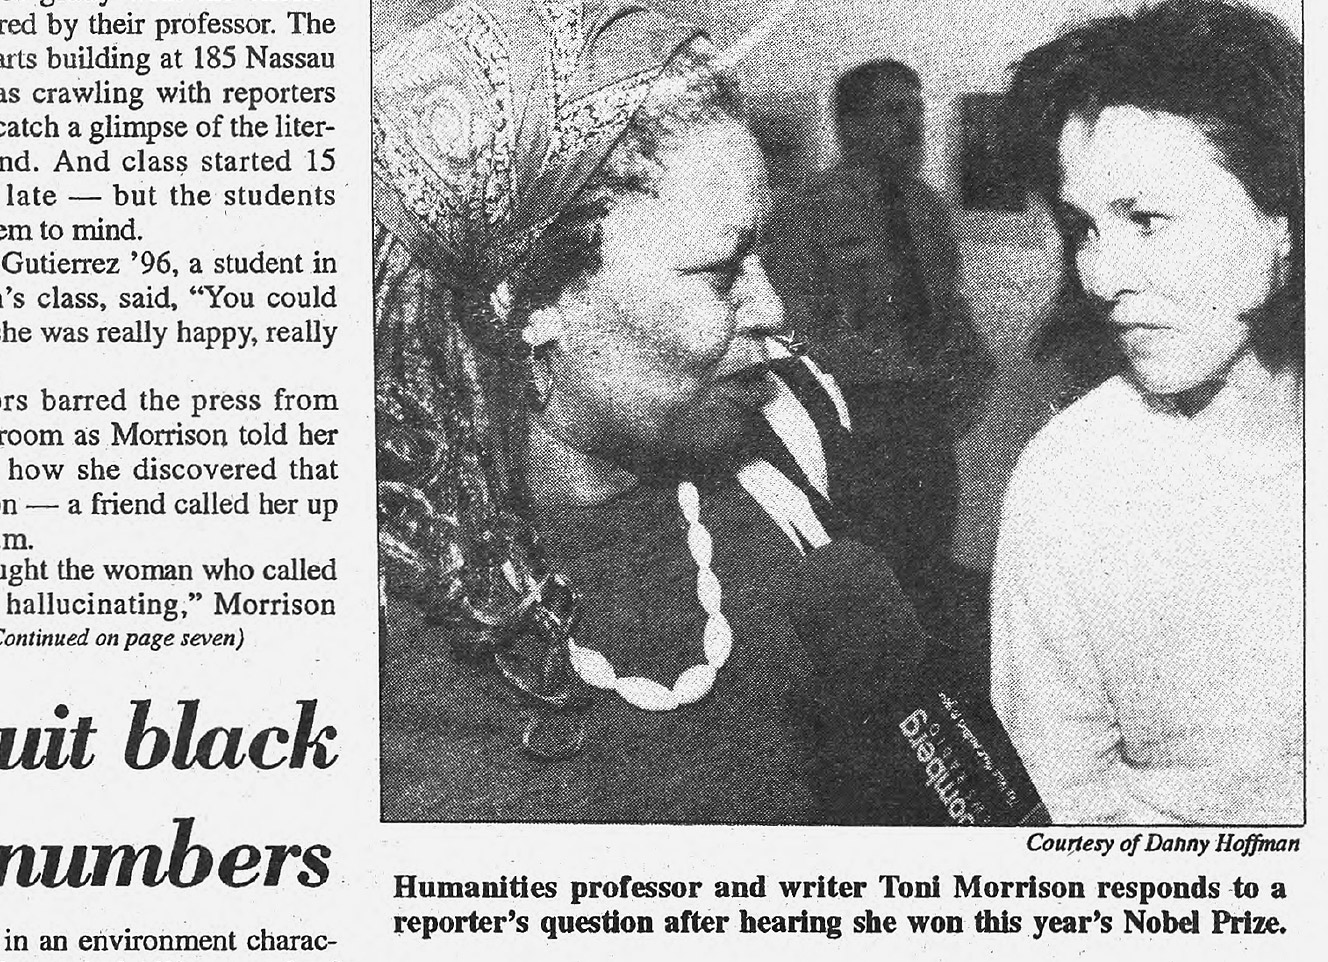 Daily Princetonian clipping featuring Toni Morrison, Nobel Prize winner.